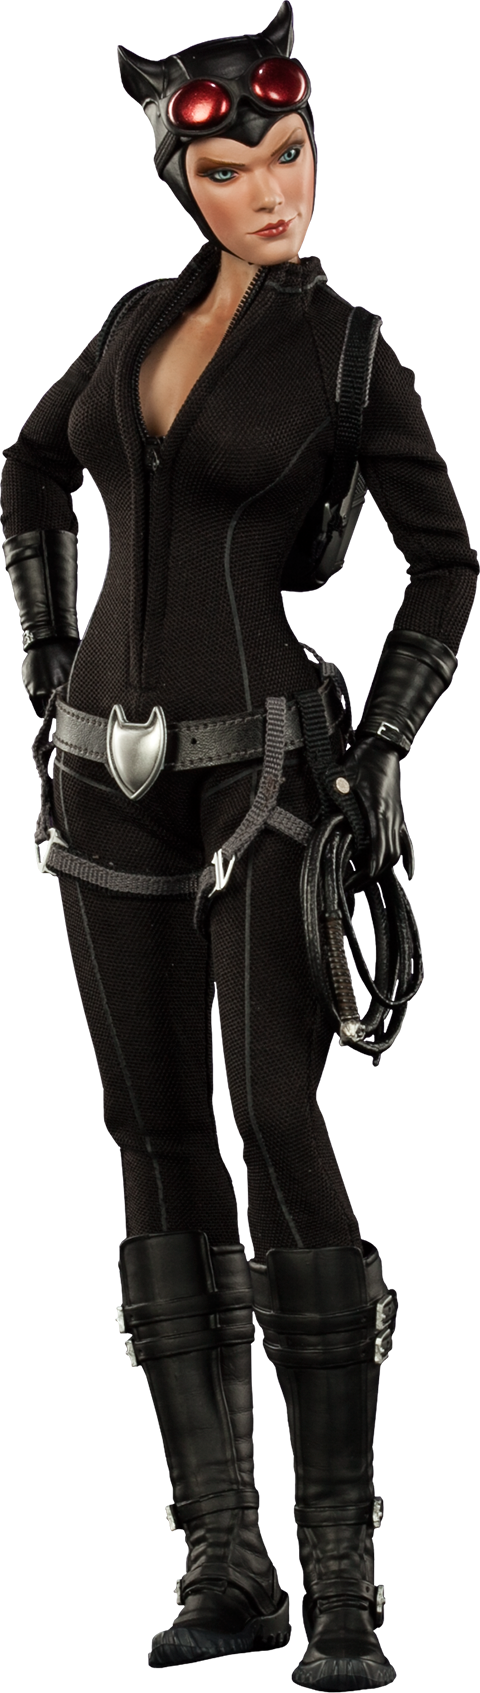 Sideshow Collectibles Catwoman Sixth Scale Figure